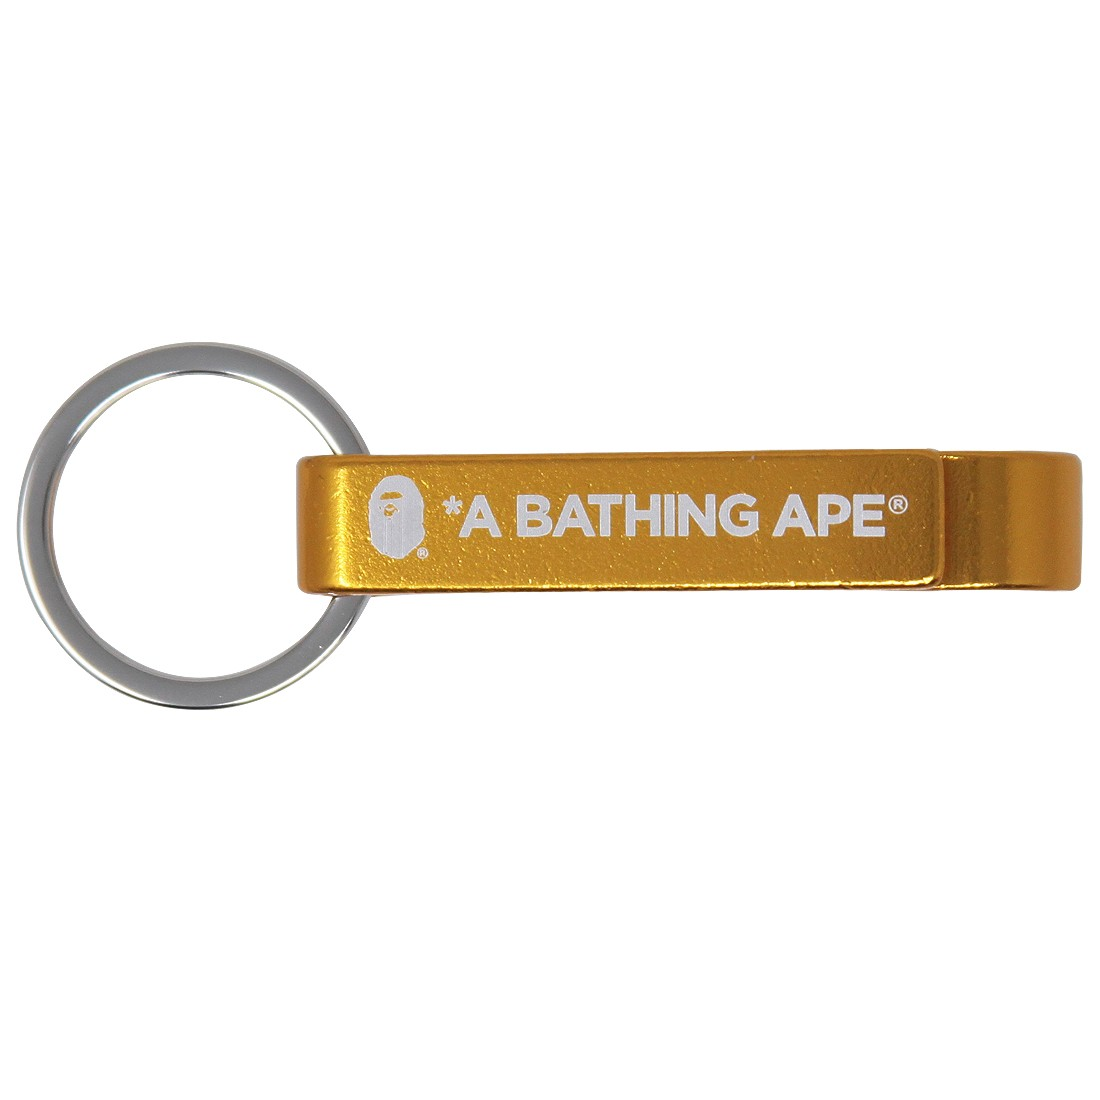 A Bathing Ape Bape Bottle Opener Keychain (orange)